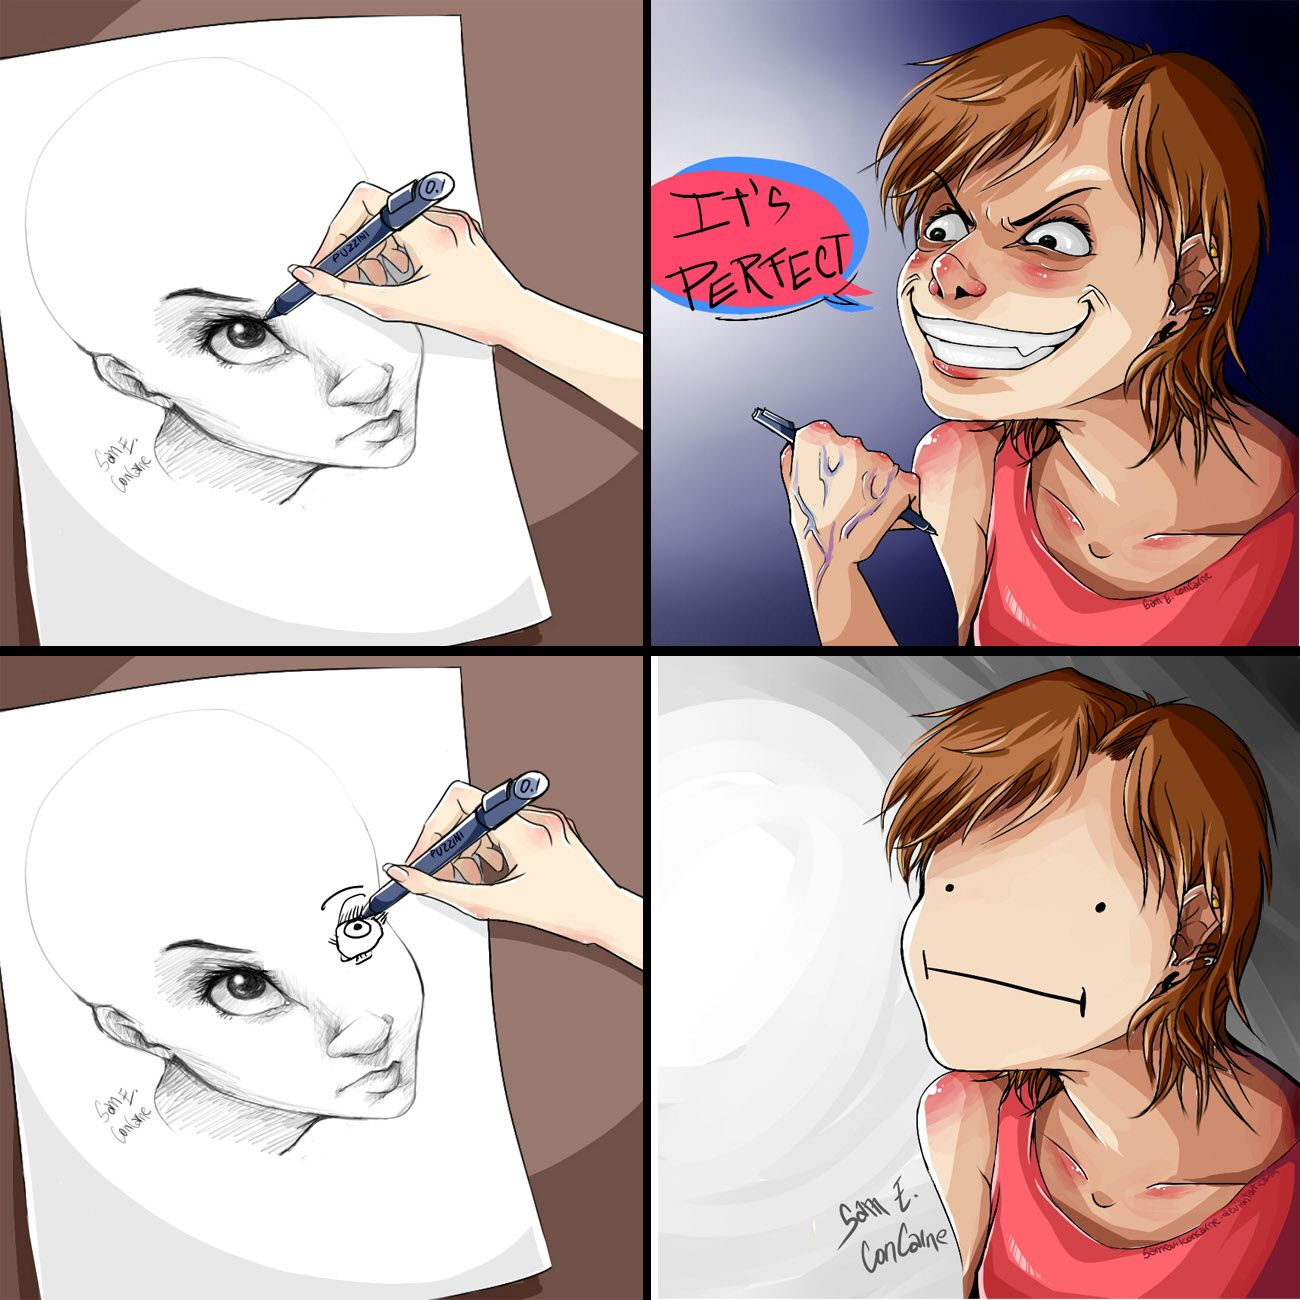 Drawing Two Eyes Never Had Been So Hard By Samevilconcarne Deviantart Com On Deviantart Artist Memes Funny Comics Funny Pictures